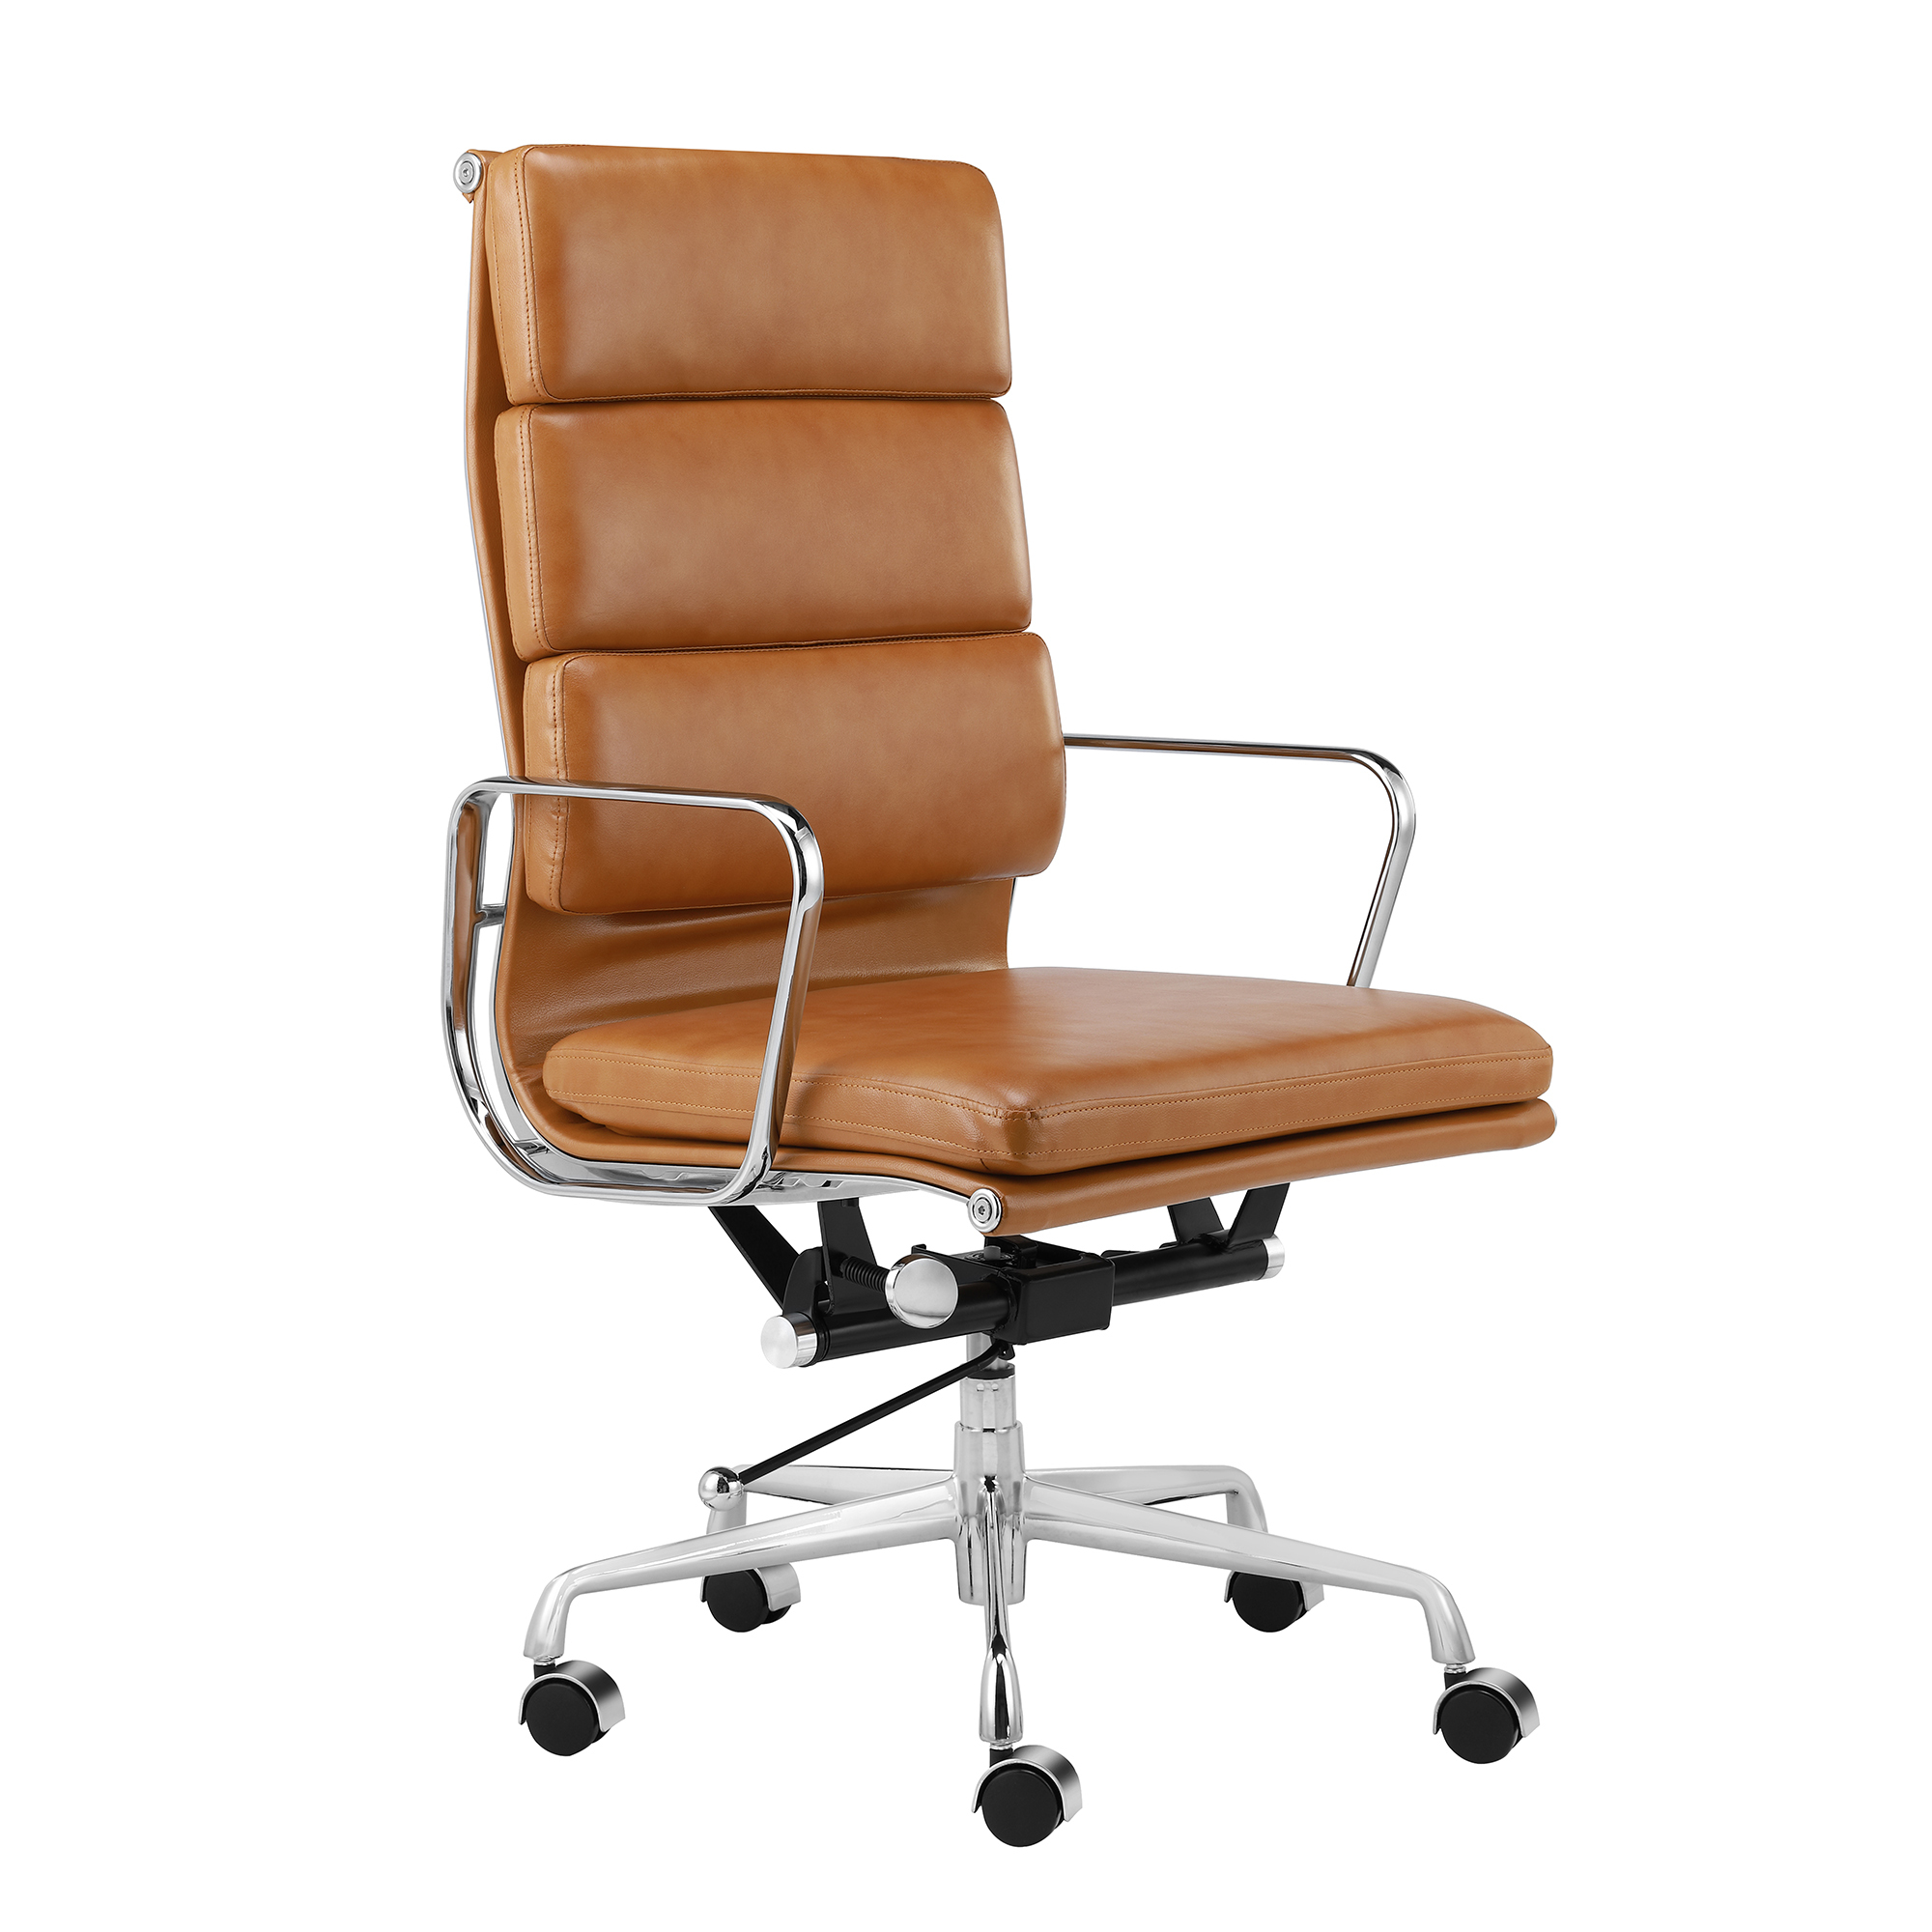 Terrific Eames Premium Leather Replica High Back Soft Pad Management Office Chair Andrewgaddart Wooden Chair Designs For Living Room Andrewgaddartcom